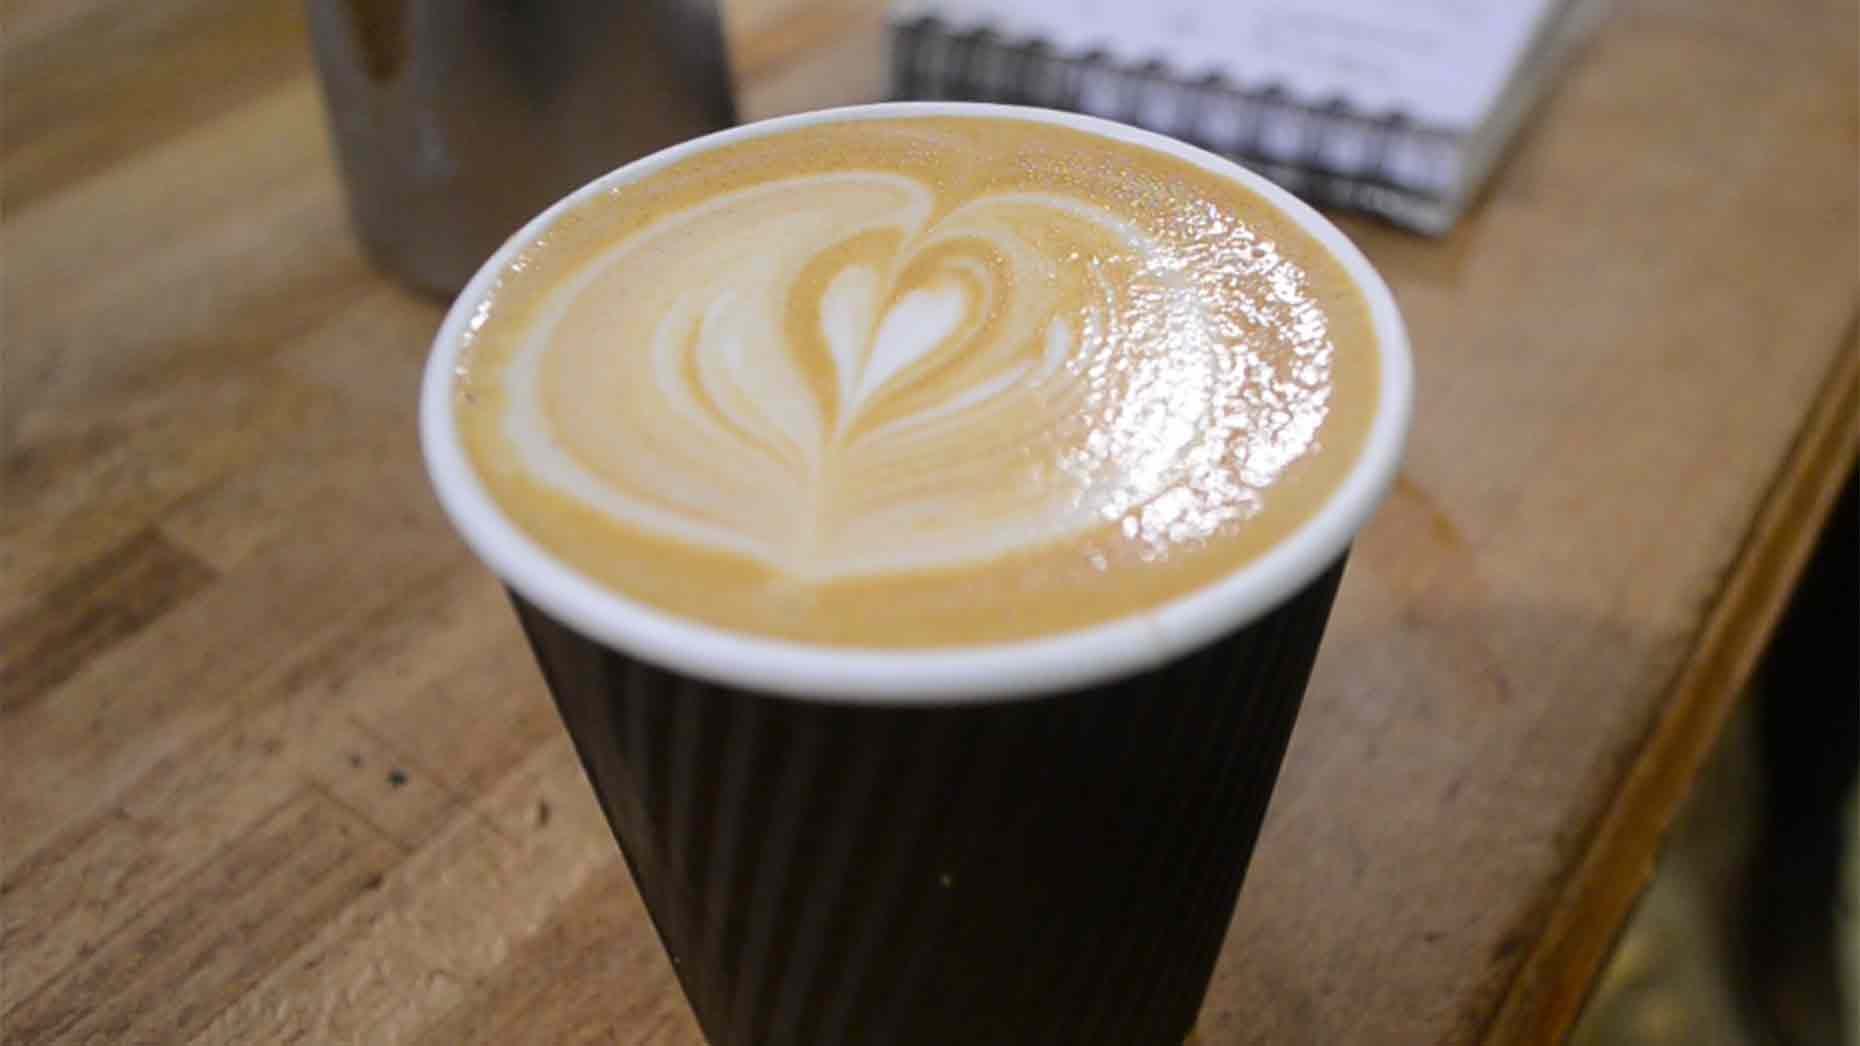 Industry responds to coffee cups report